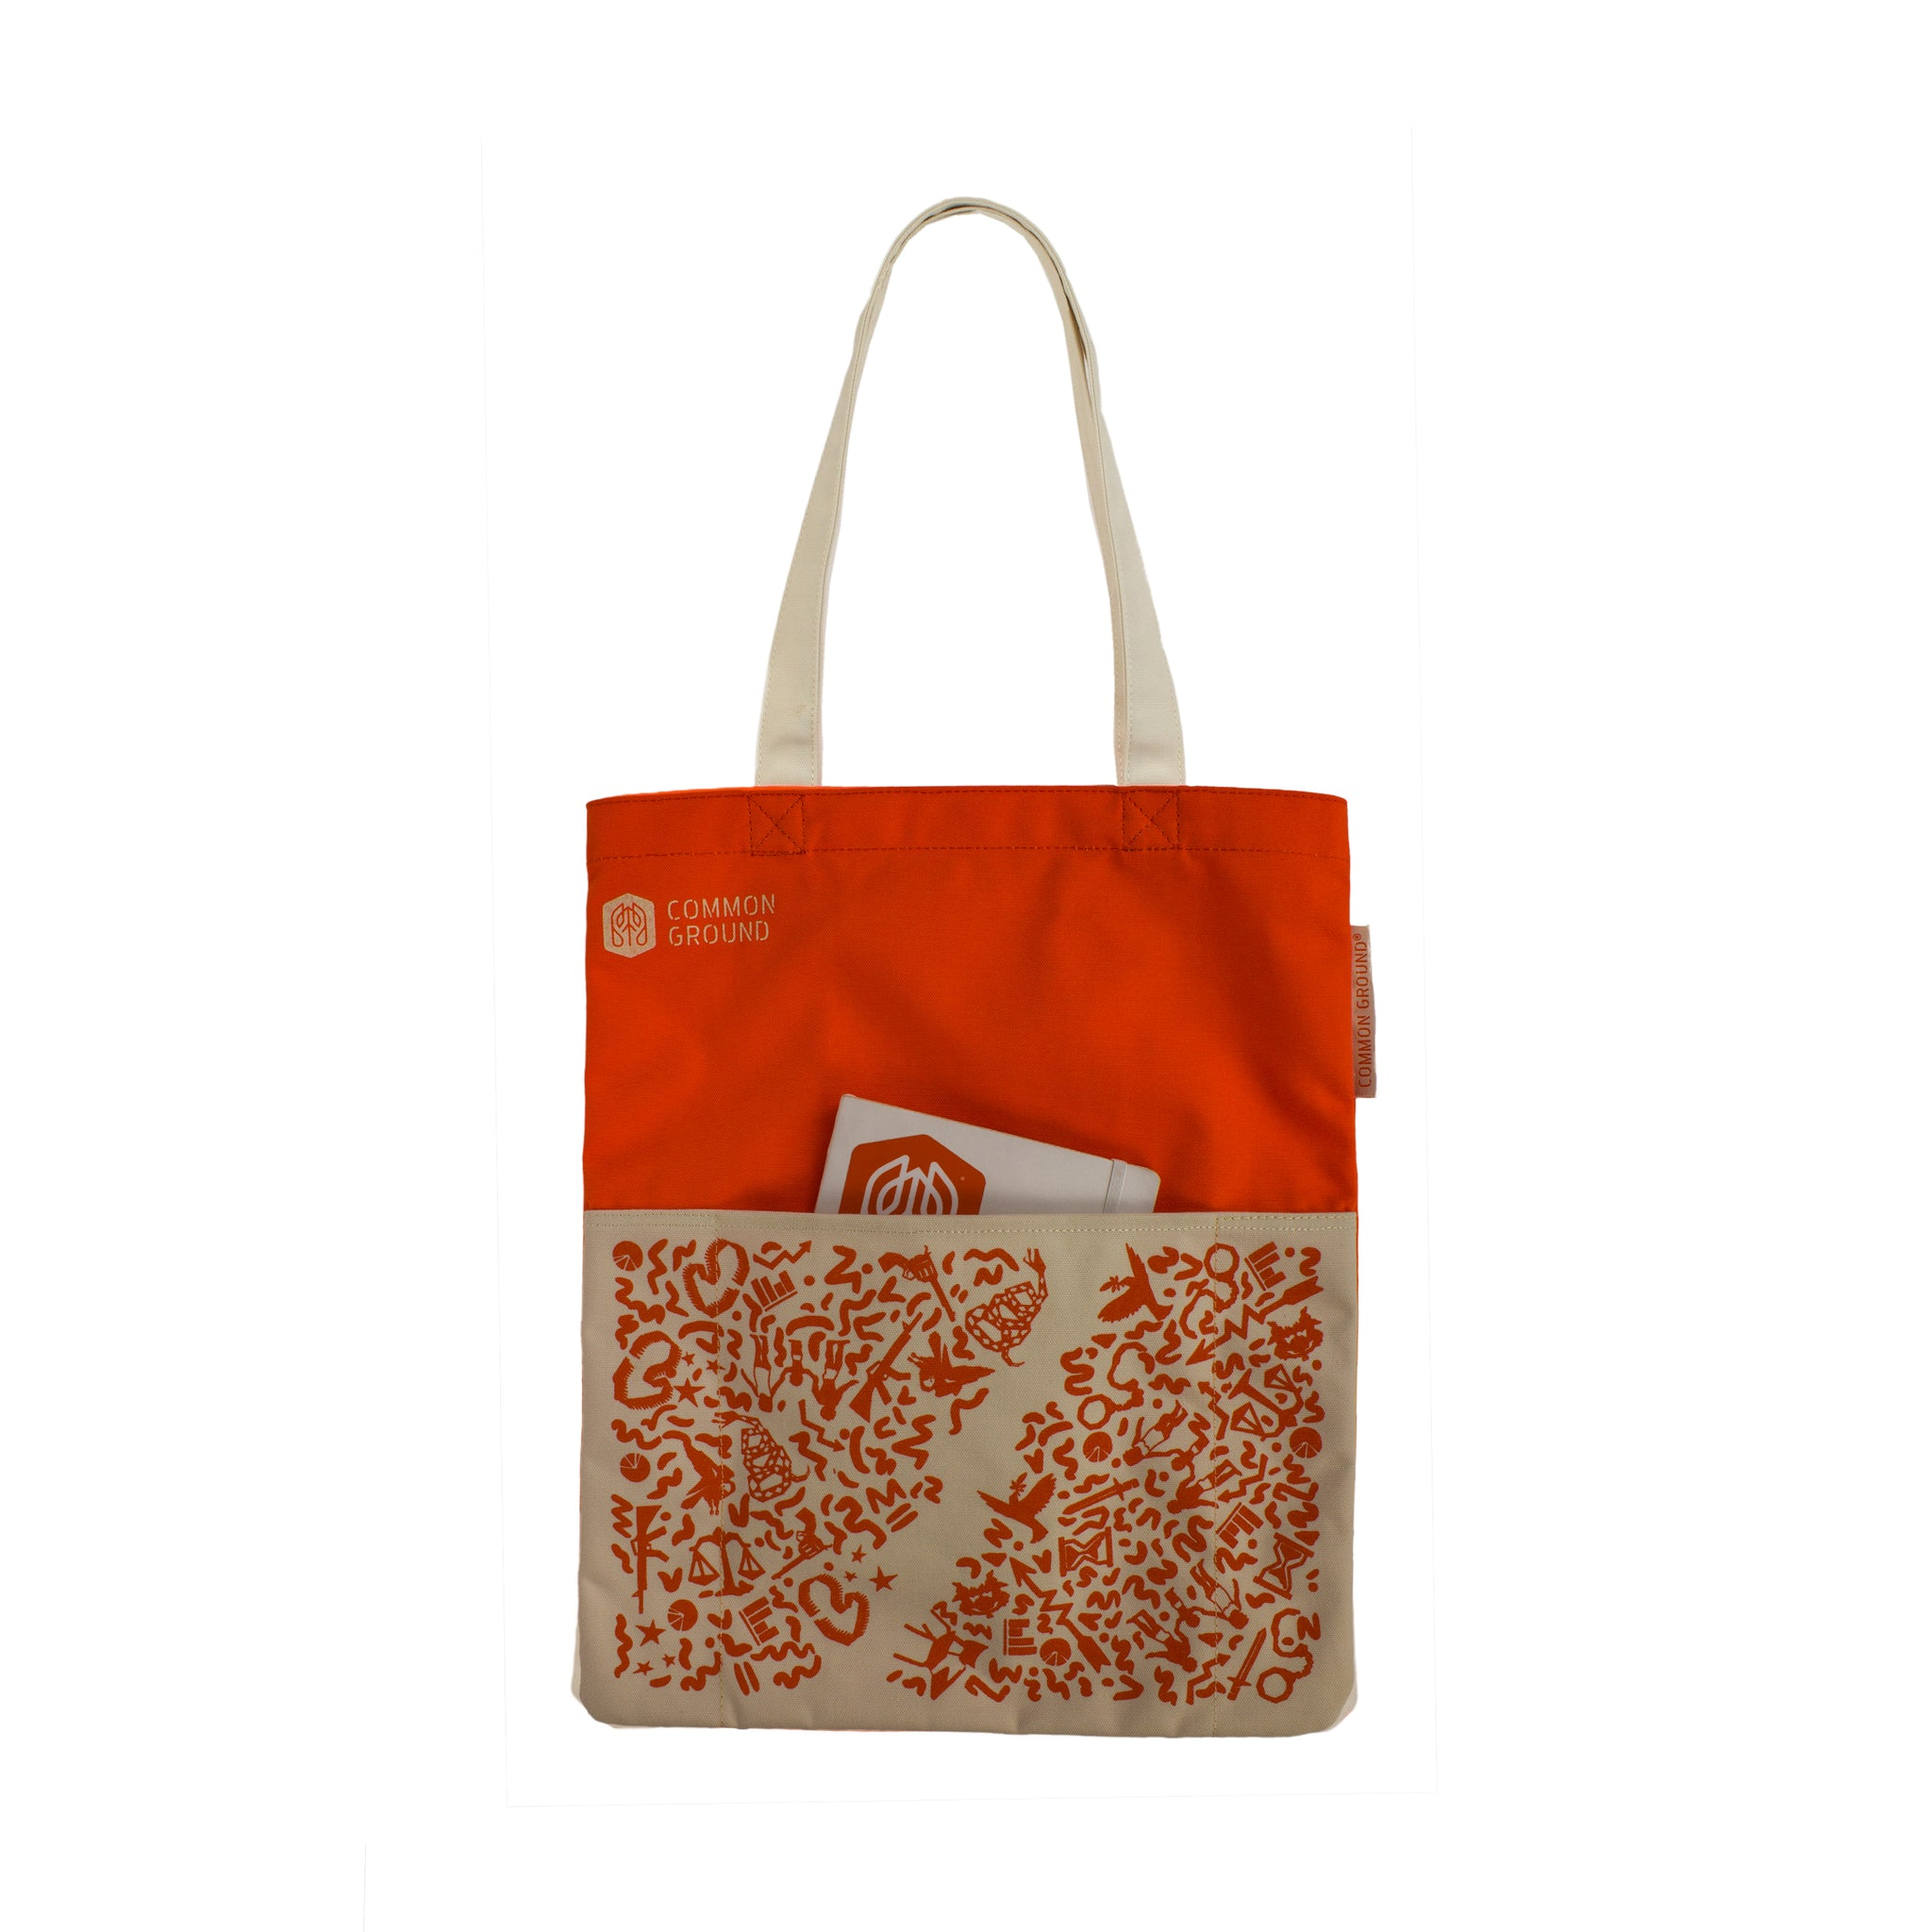 Vibrant_Orange - Common Ground Reading Tote Front External Pocket View